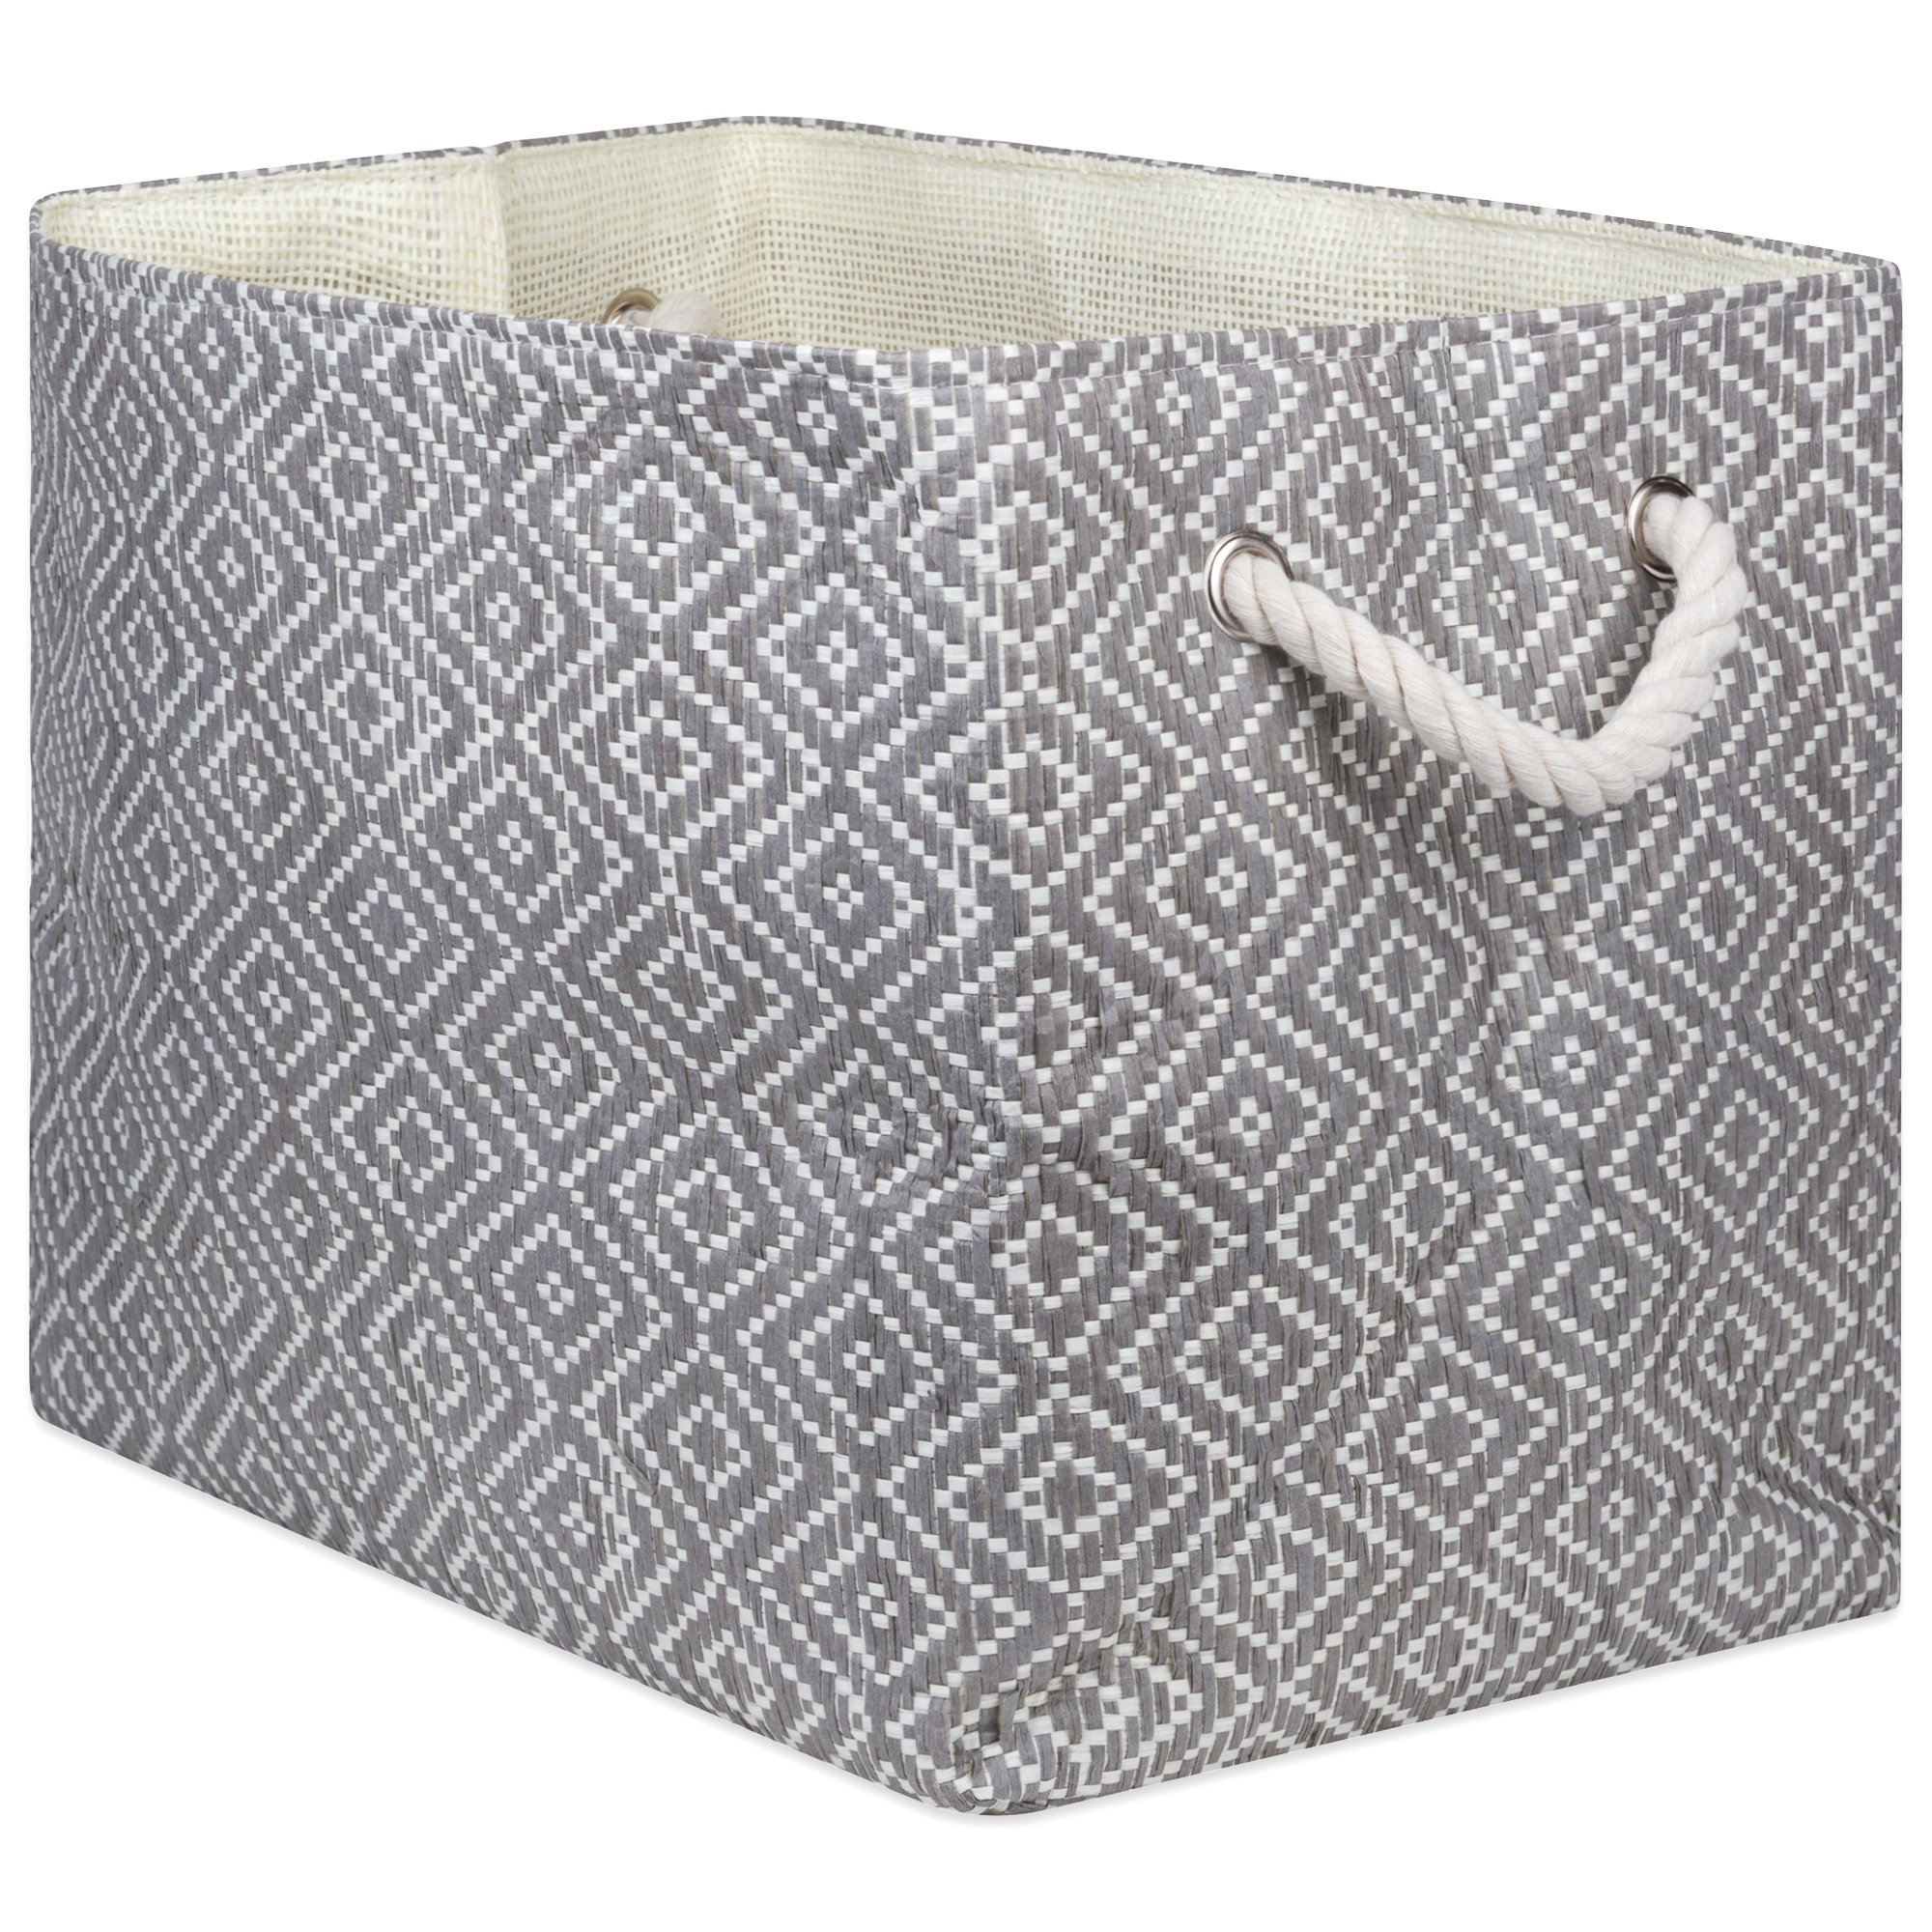 """DII Oversize Woven Paper Storage Basket or Bin, Collapsible & Convenient Home Organization Solution for Office, Bedroom, Closet, Toys, Laundry(Medium - 15x10x12""""), Gray & White Diamond Basketweave"""